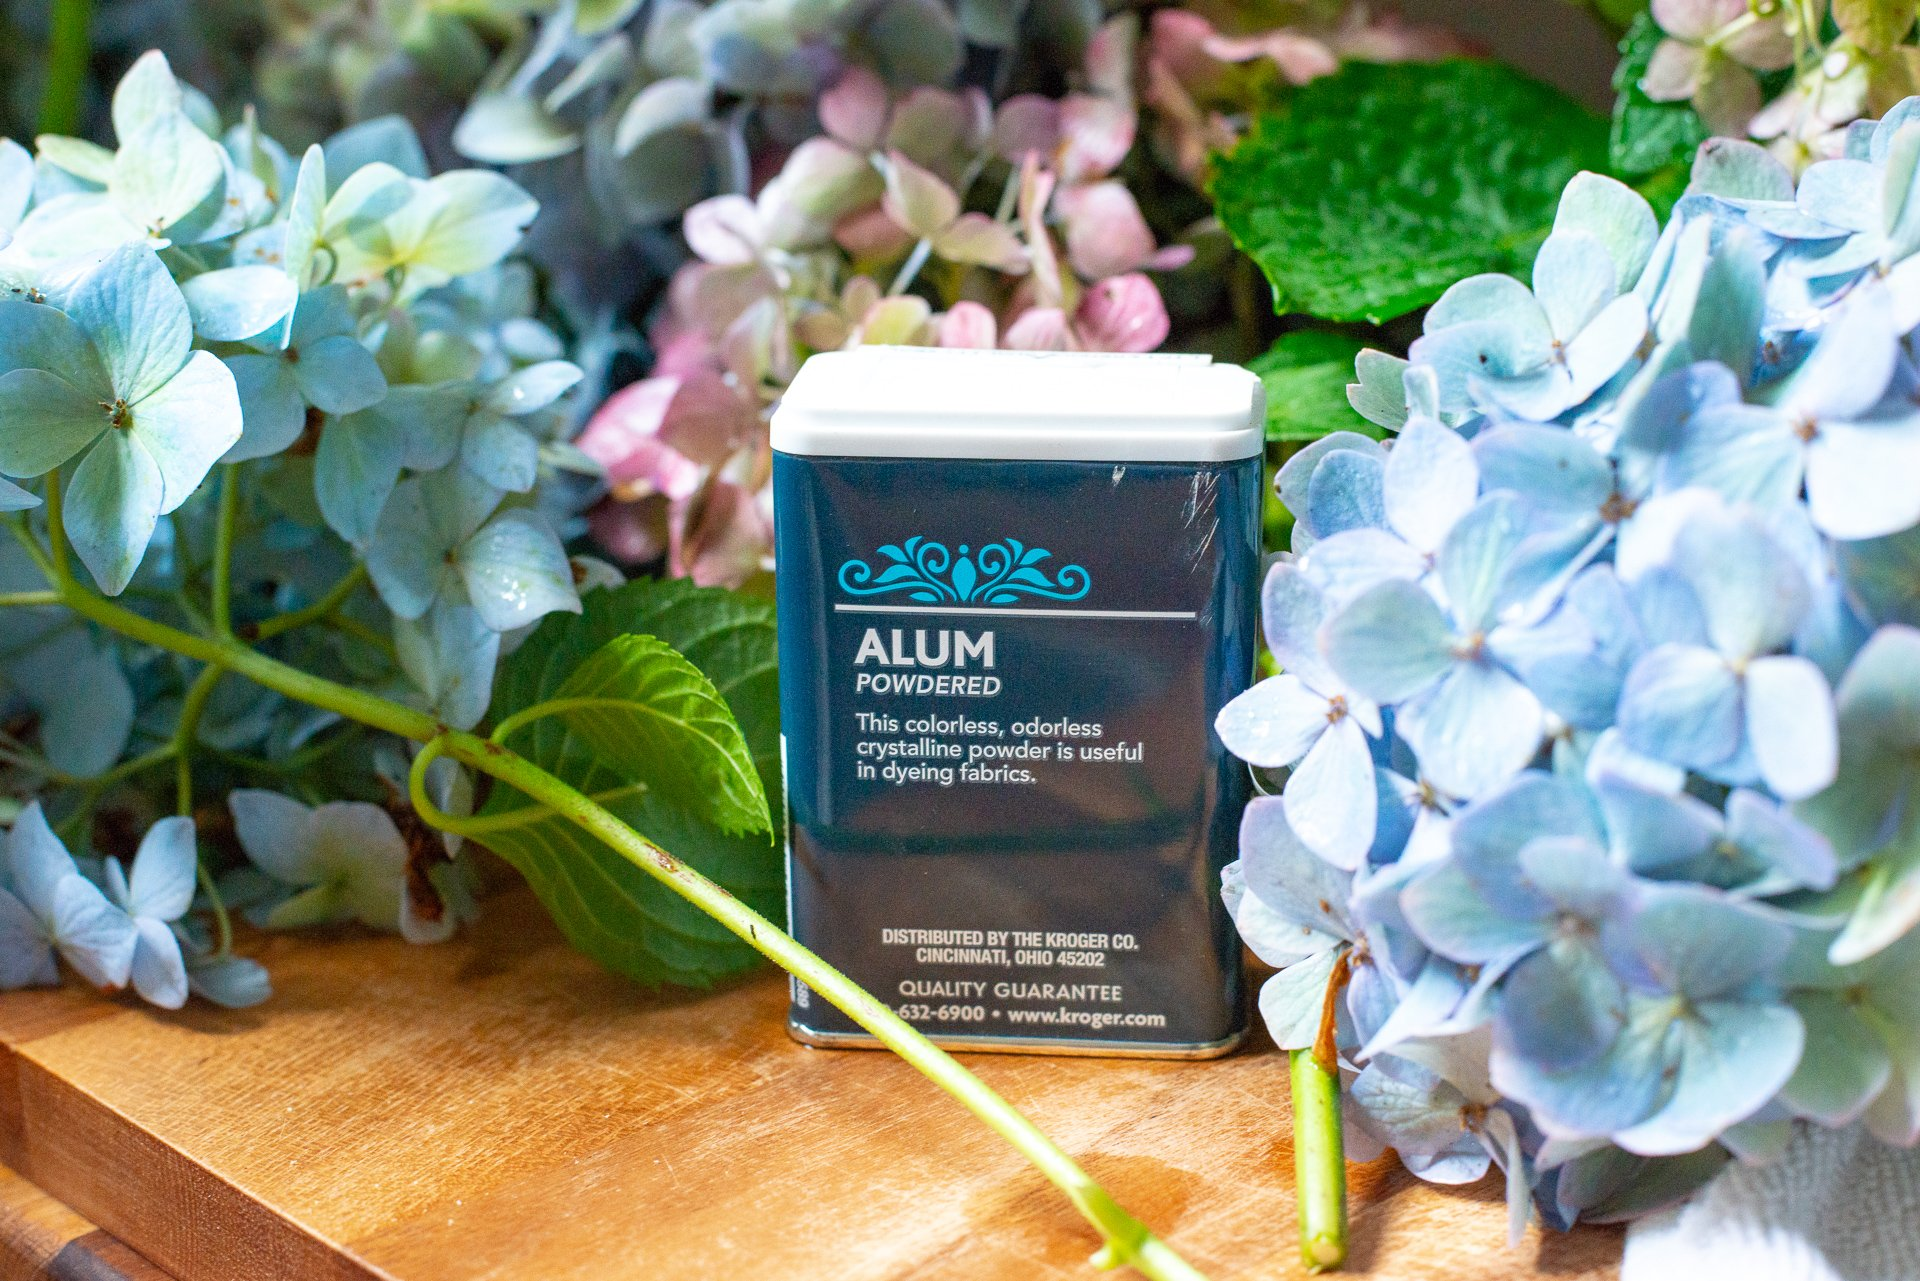 Alum is a spice that can be found in most grocery stores and keeps hydrangea bouquets from wilting - use alum to keep hydrangea bouqets fresh